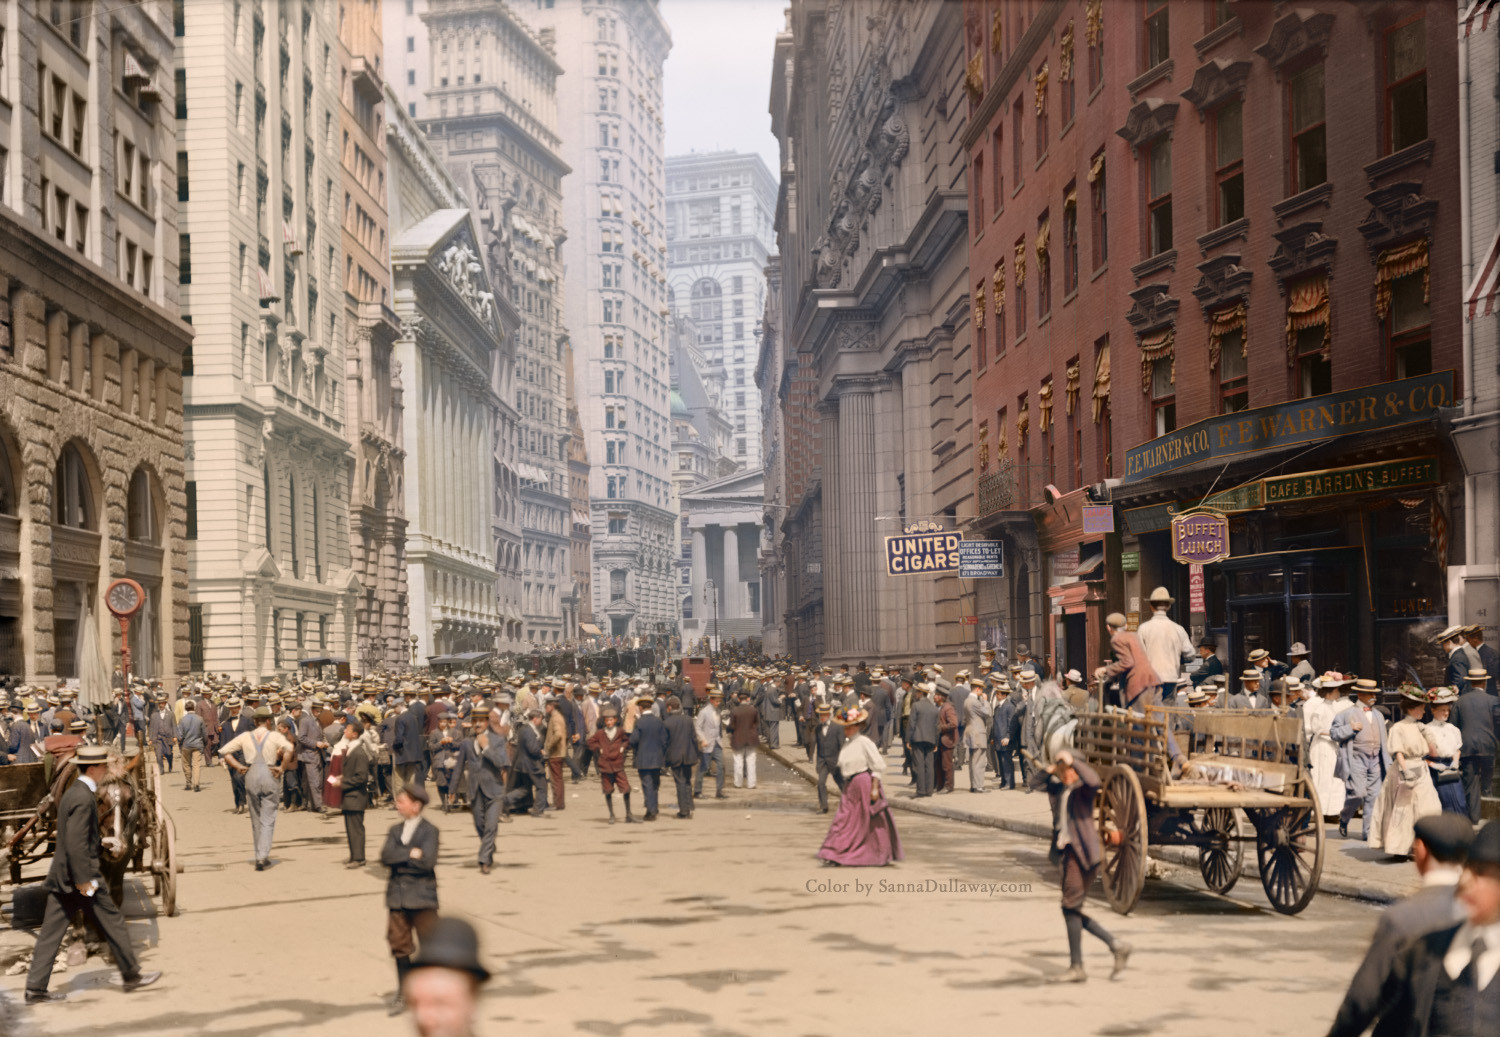 colorized_images_270814_6